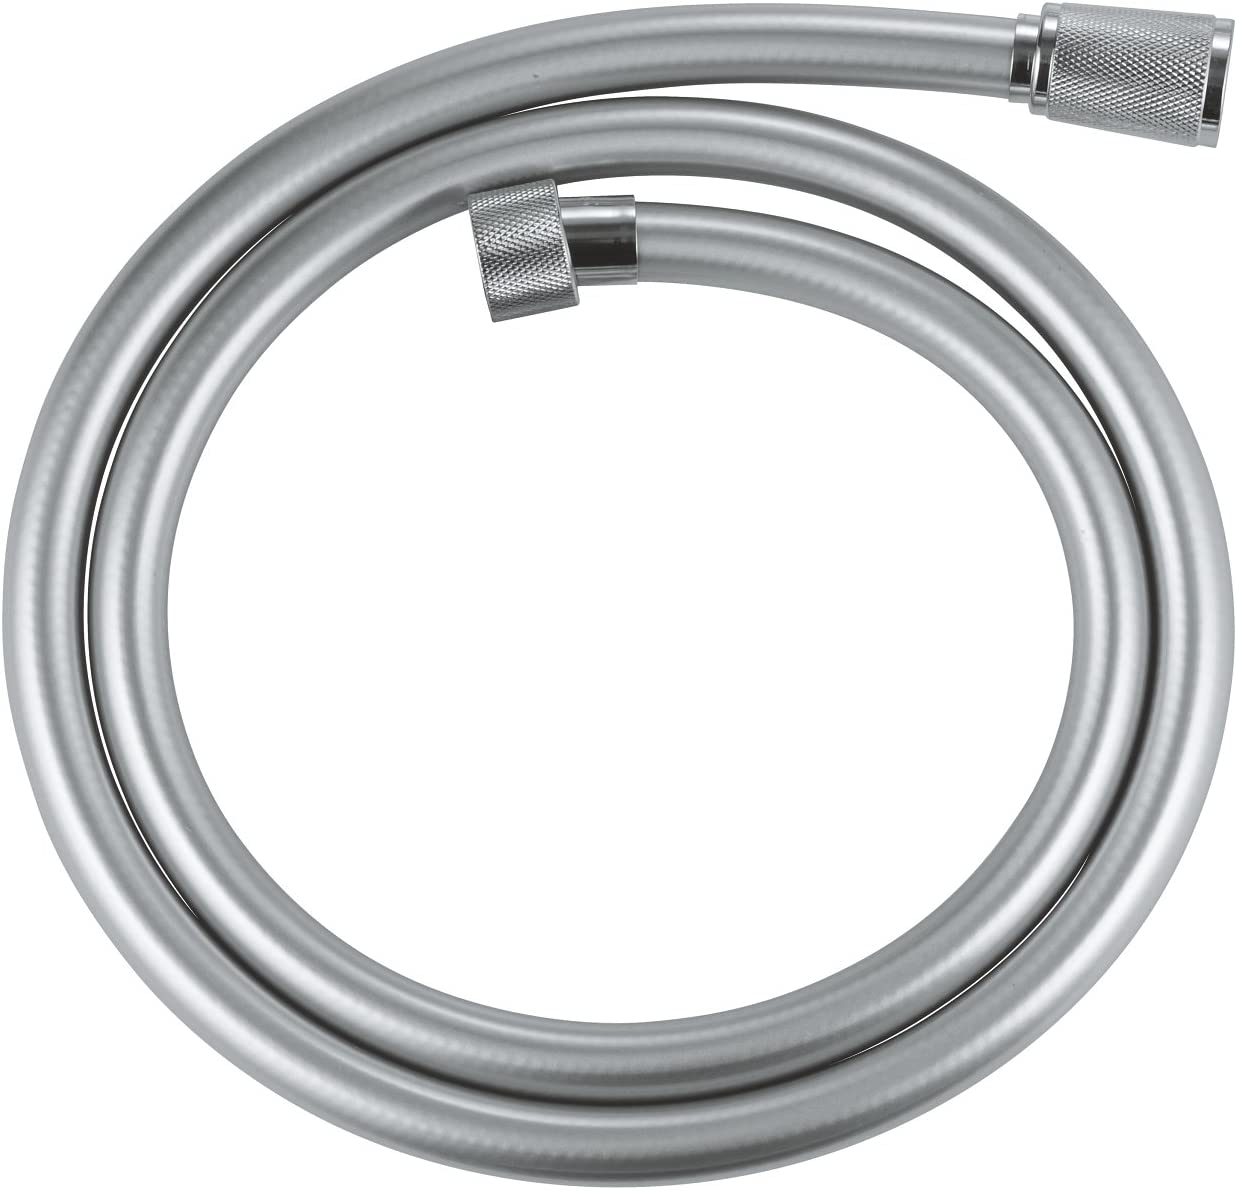 GROHE 28362000 | Shower Hose Silverflex | 1250mm